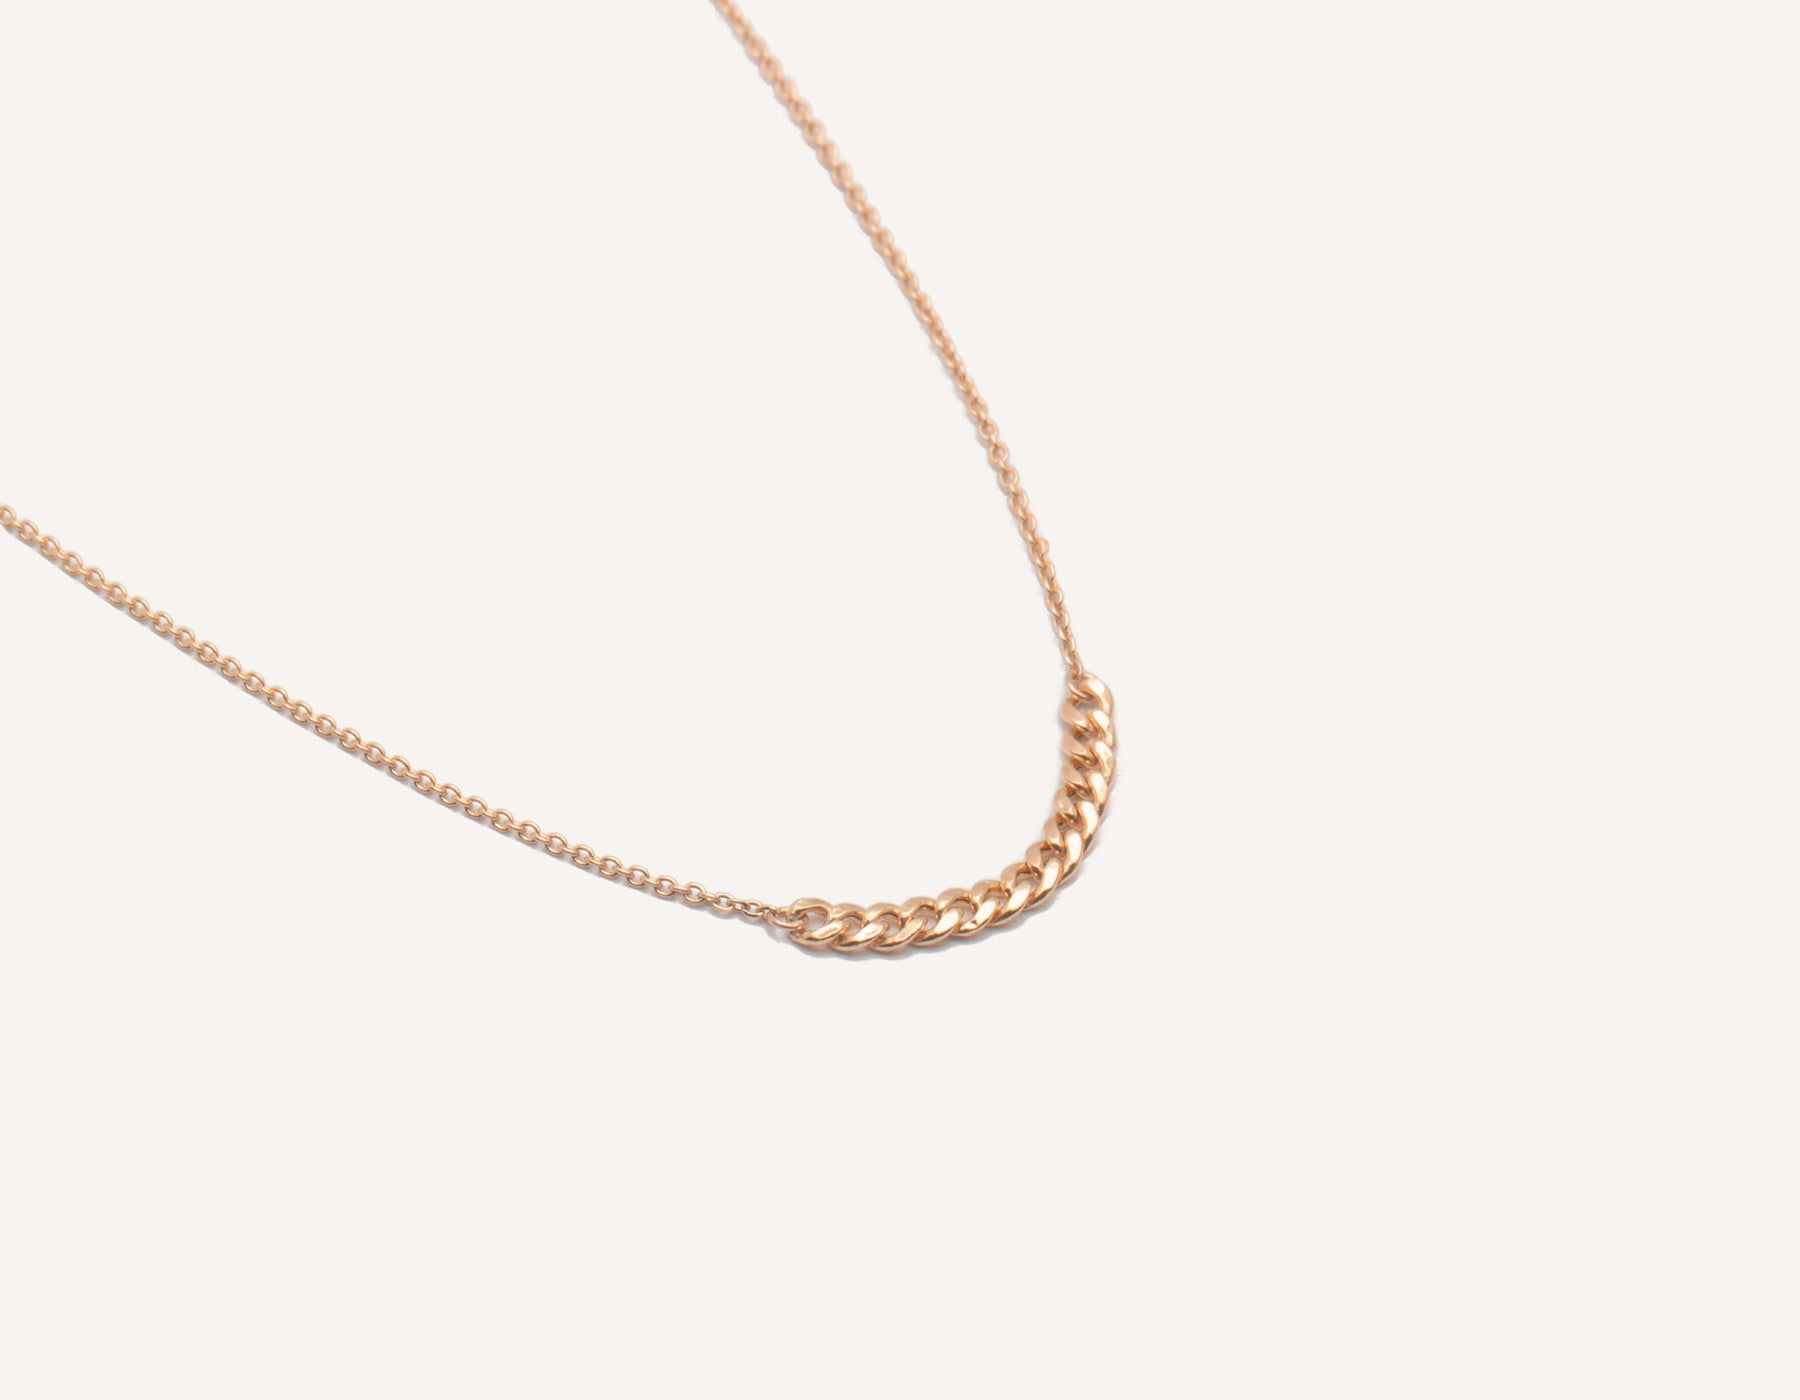 Simple classic chain 14k solid gold Interlink Necklace Vrai and Oro, 14K Rose Gold